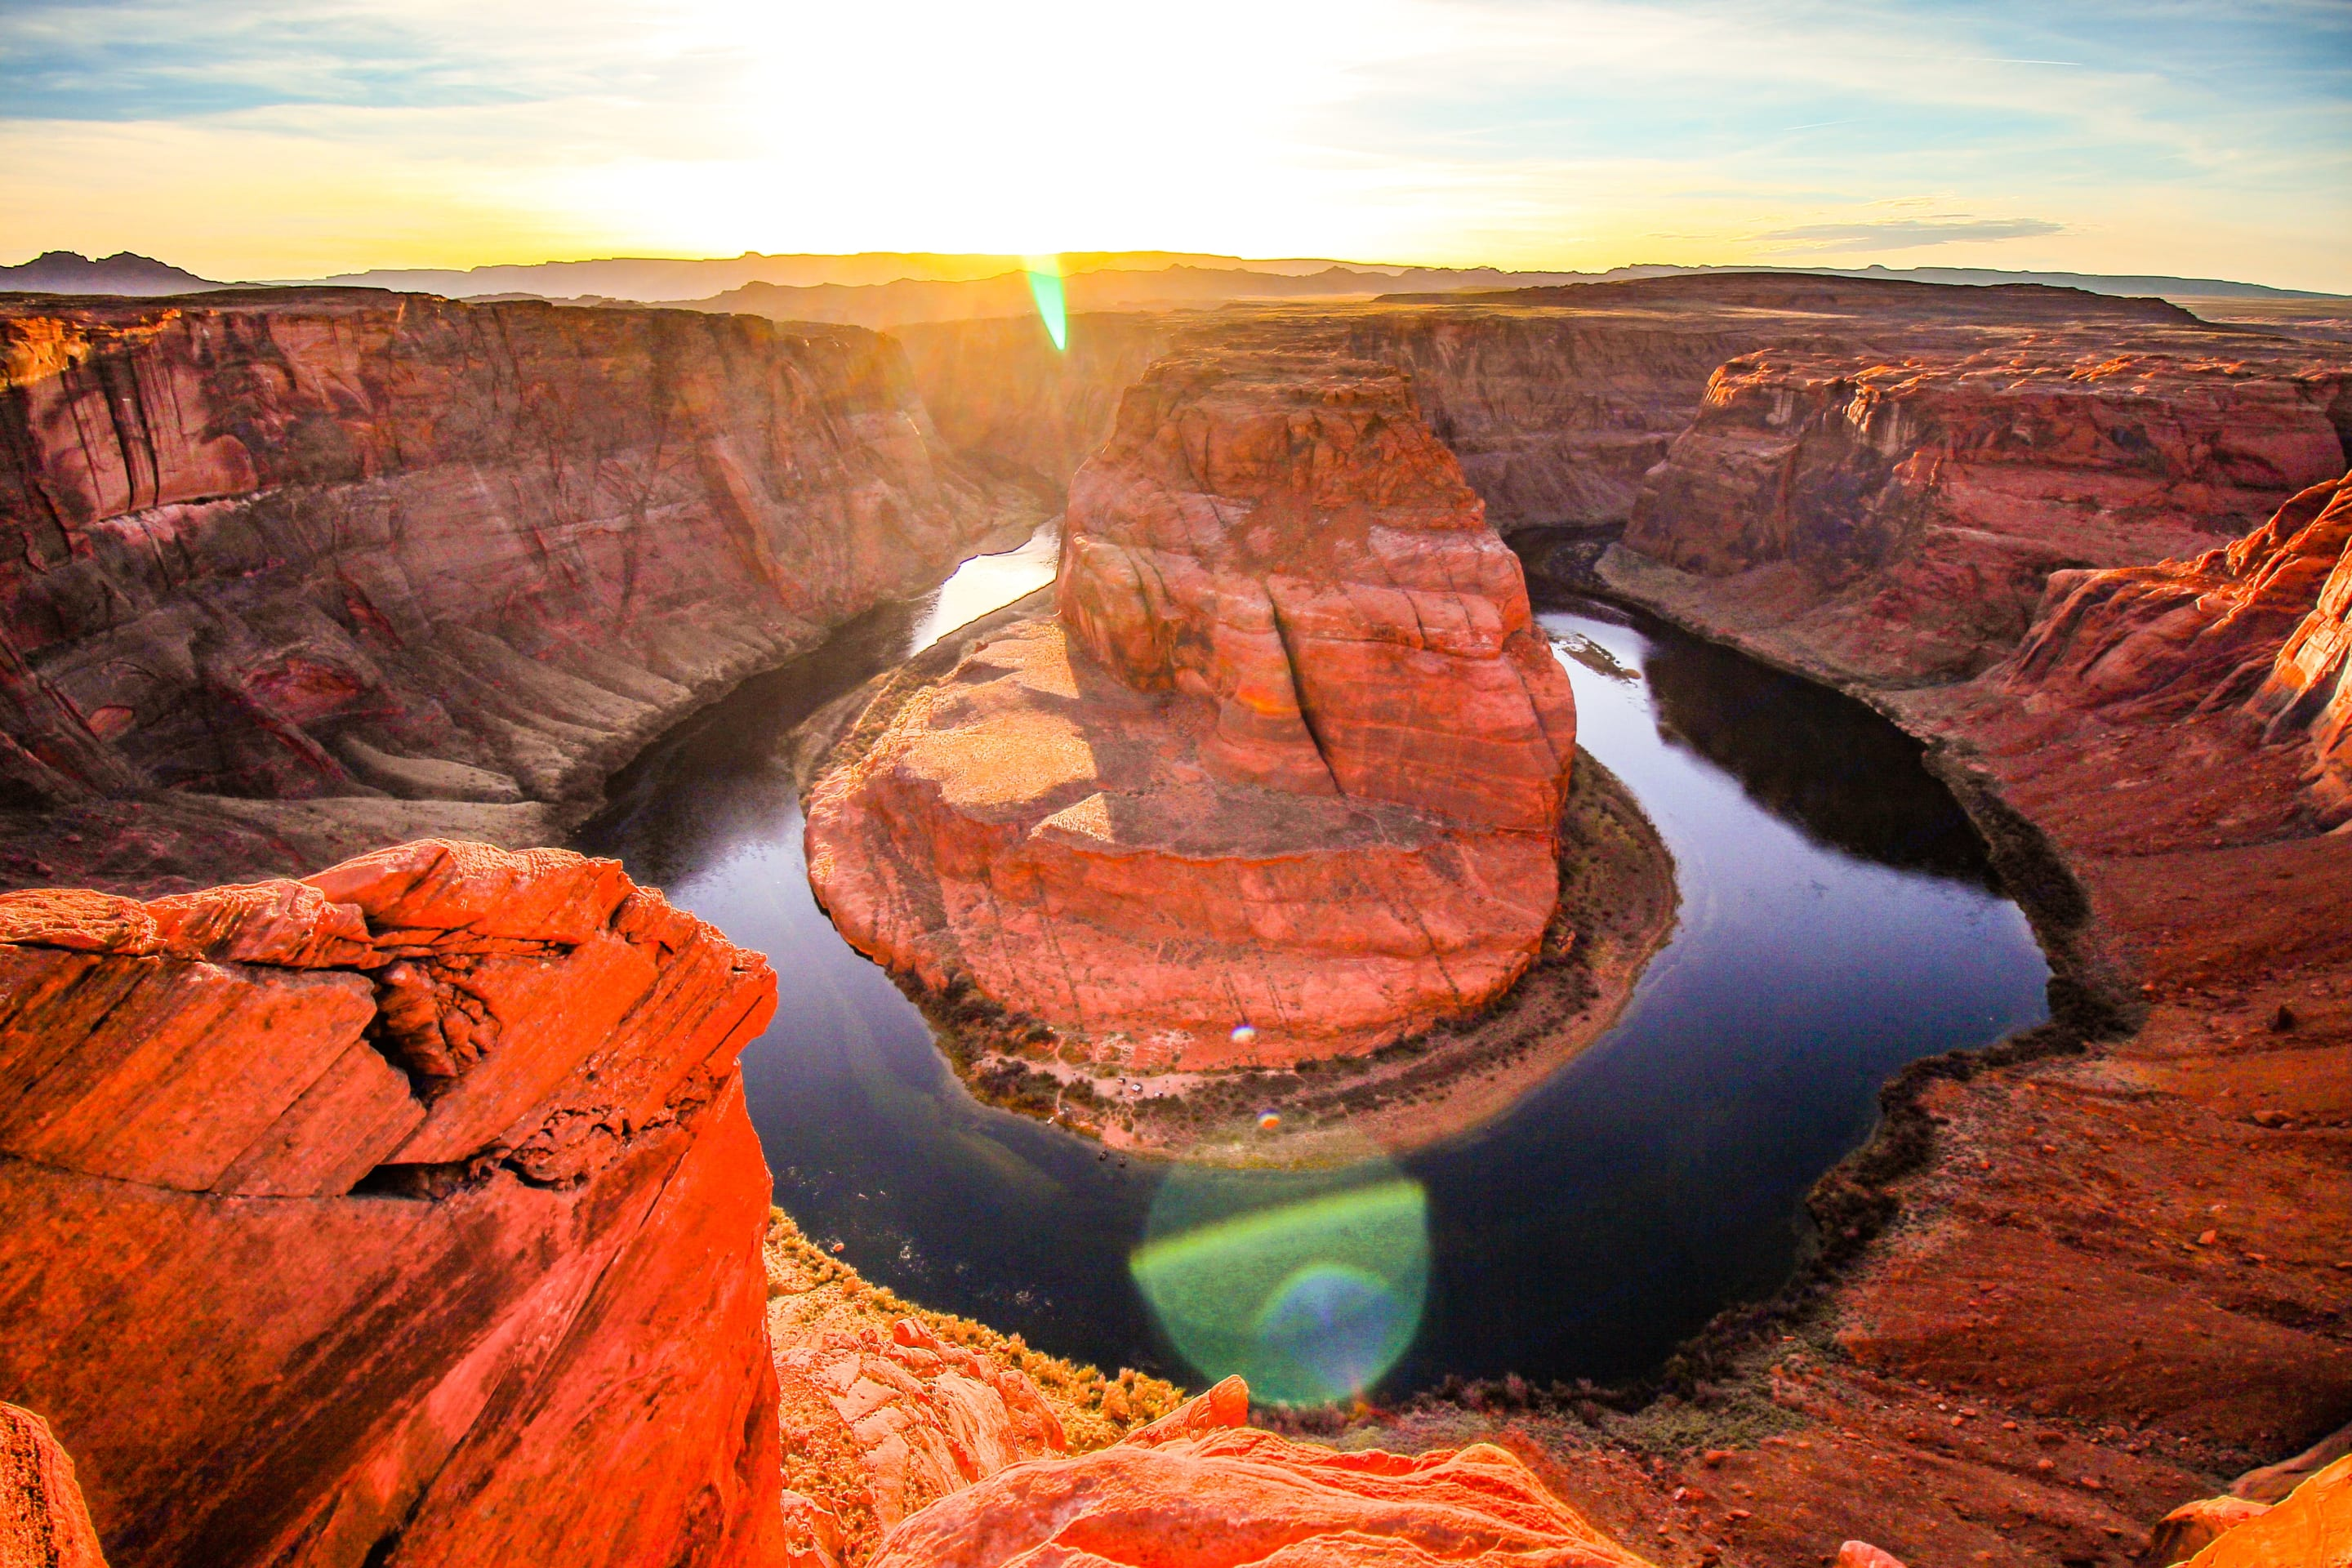 One of our Happy Camper photo hotspot: Horseshoe Bend, Arizona, just outside of Page, AZ. Ford Campervan Expedition Adventure 4x4 Camper Van Conversion 2005